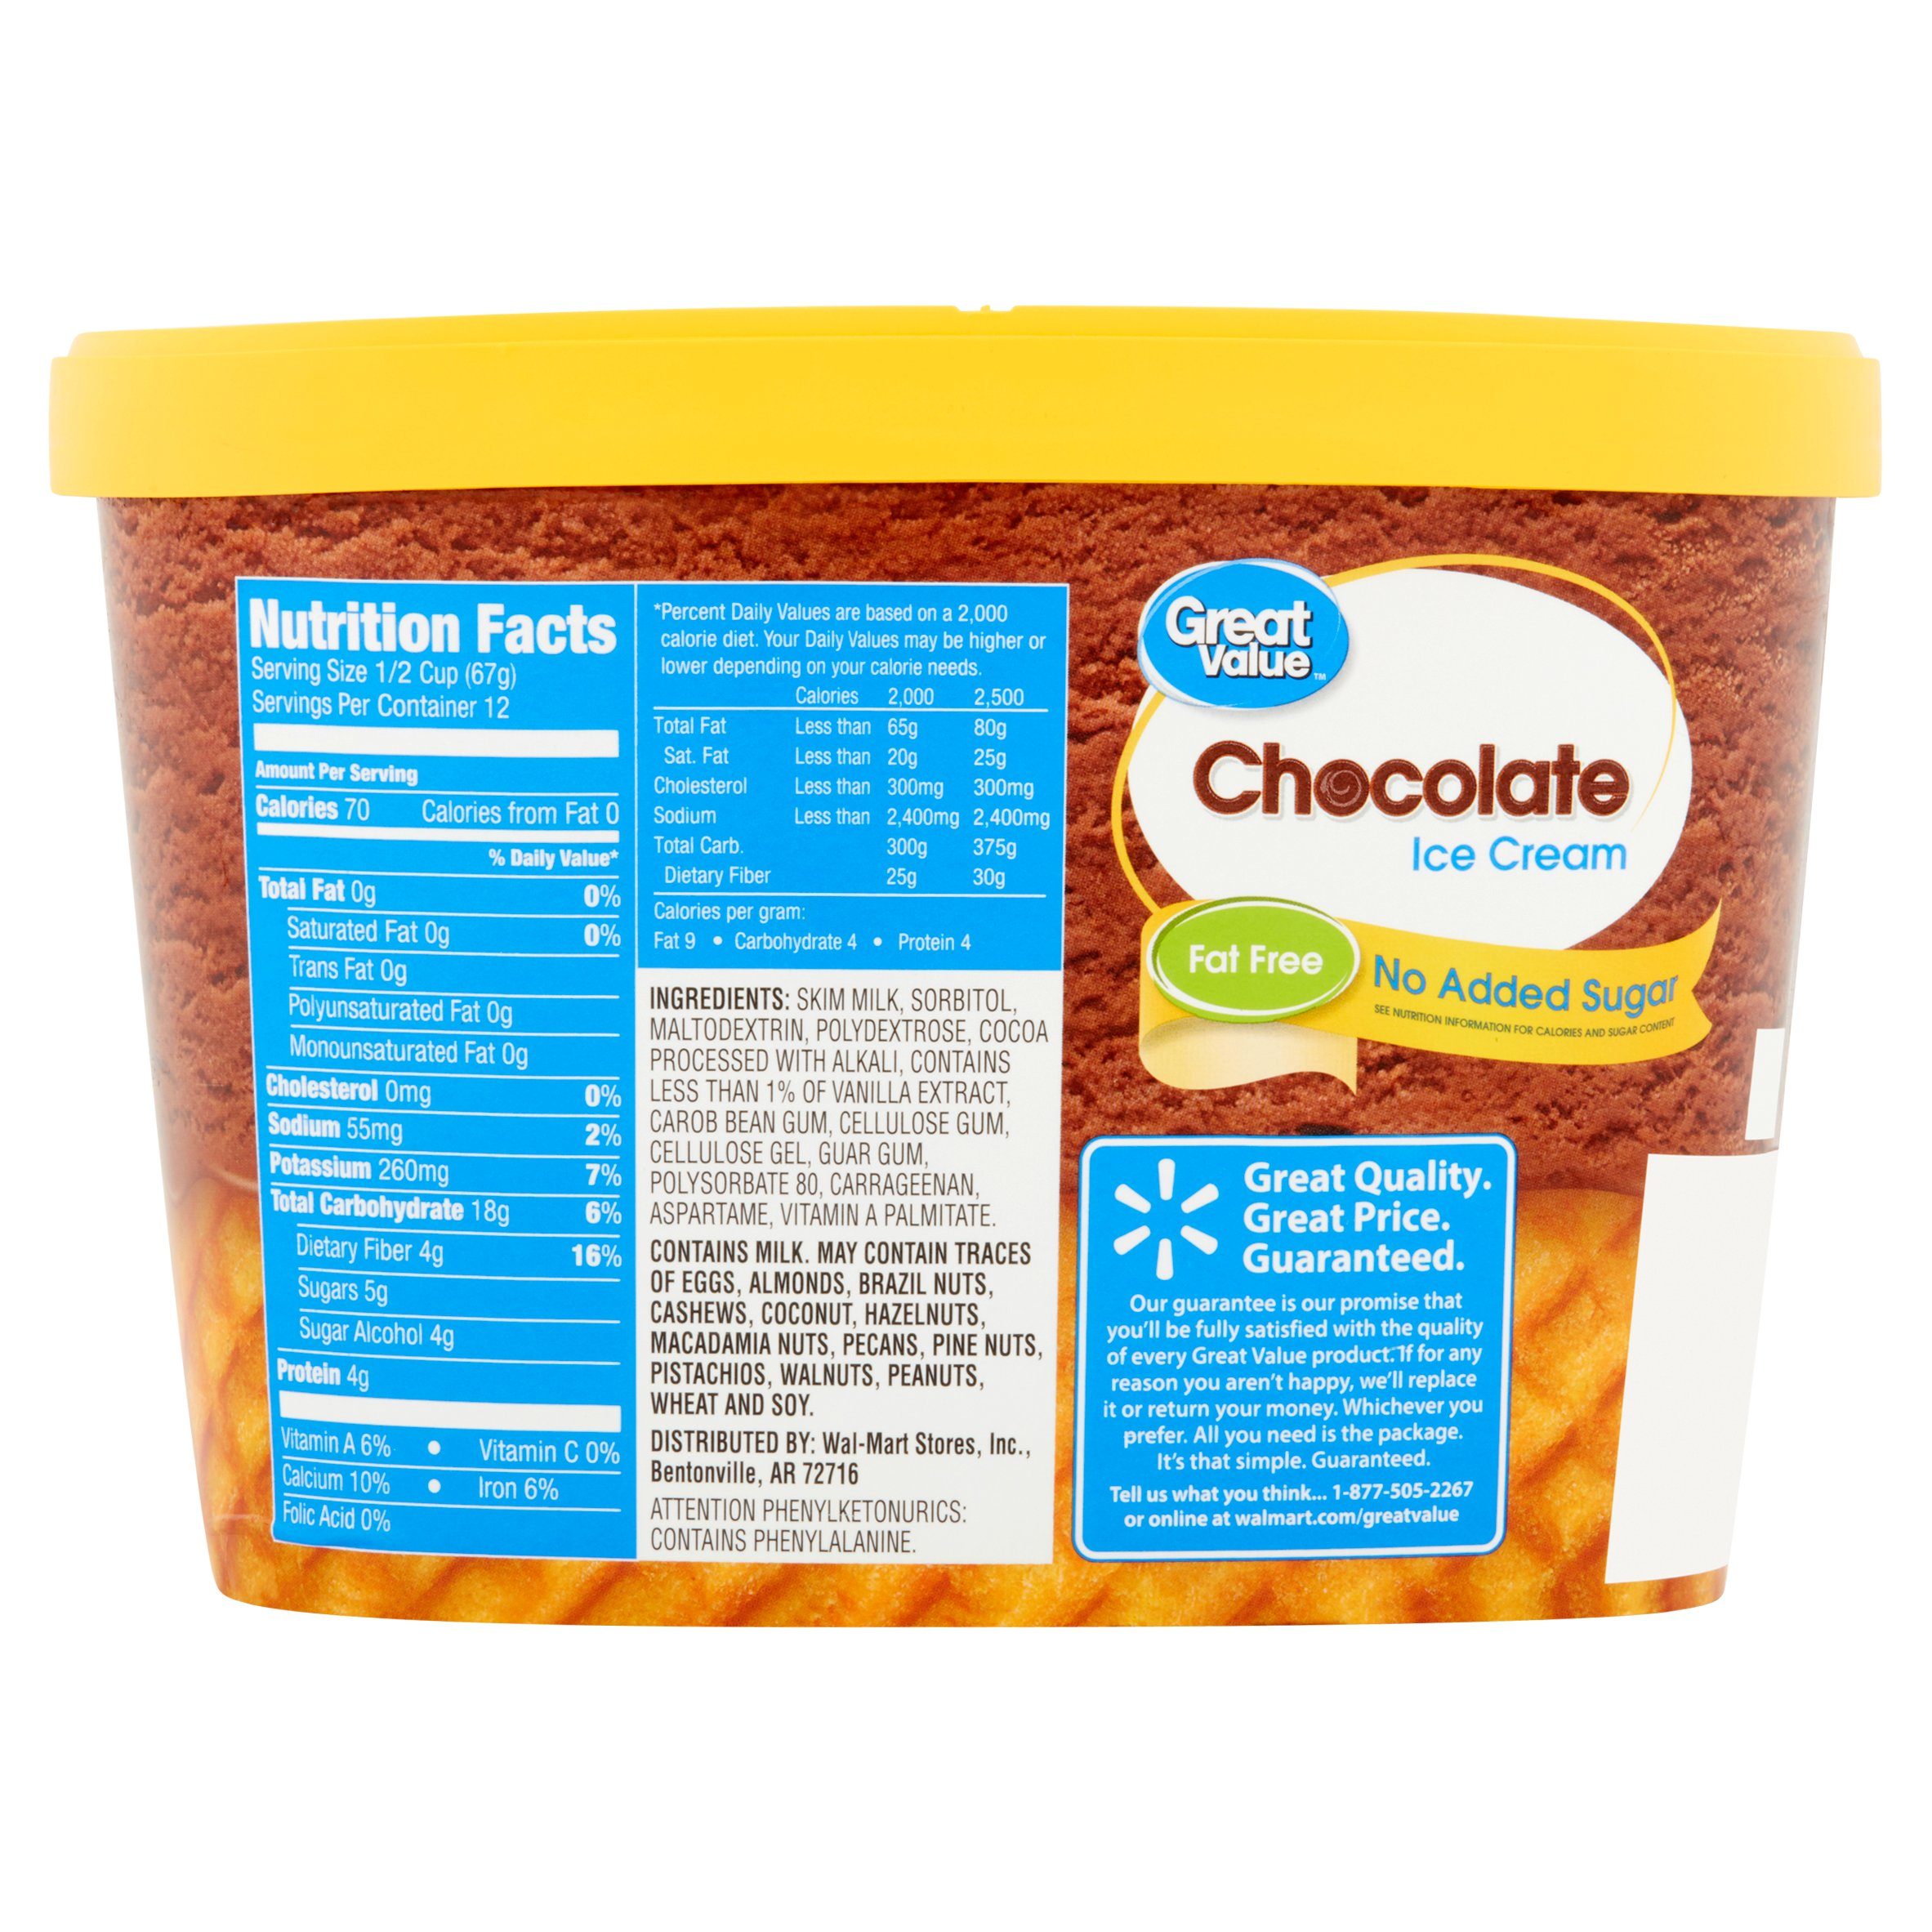 Great Value Chocolate Ice Cream Nutrition Facts